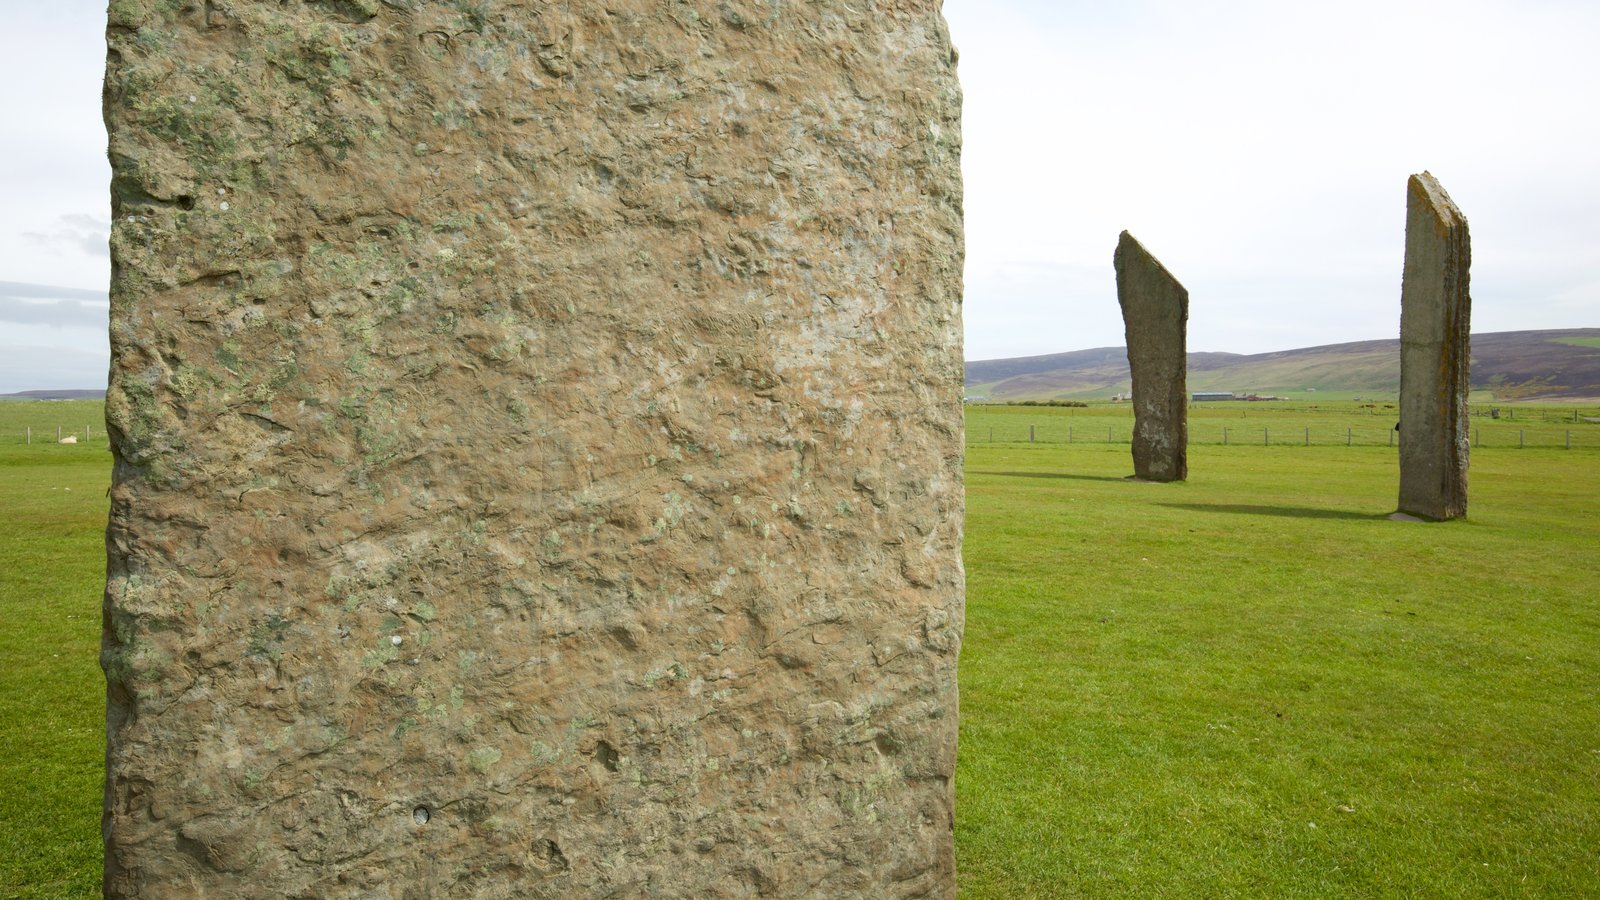 Standing Stones of Stenness which includes heritage elements, tranquil scenes and a monument